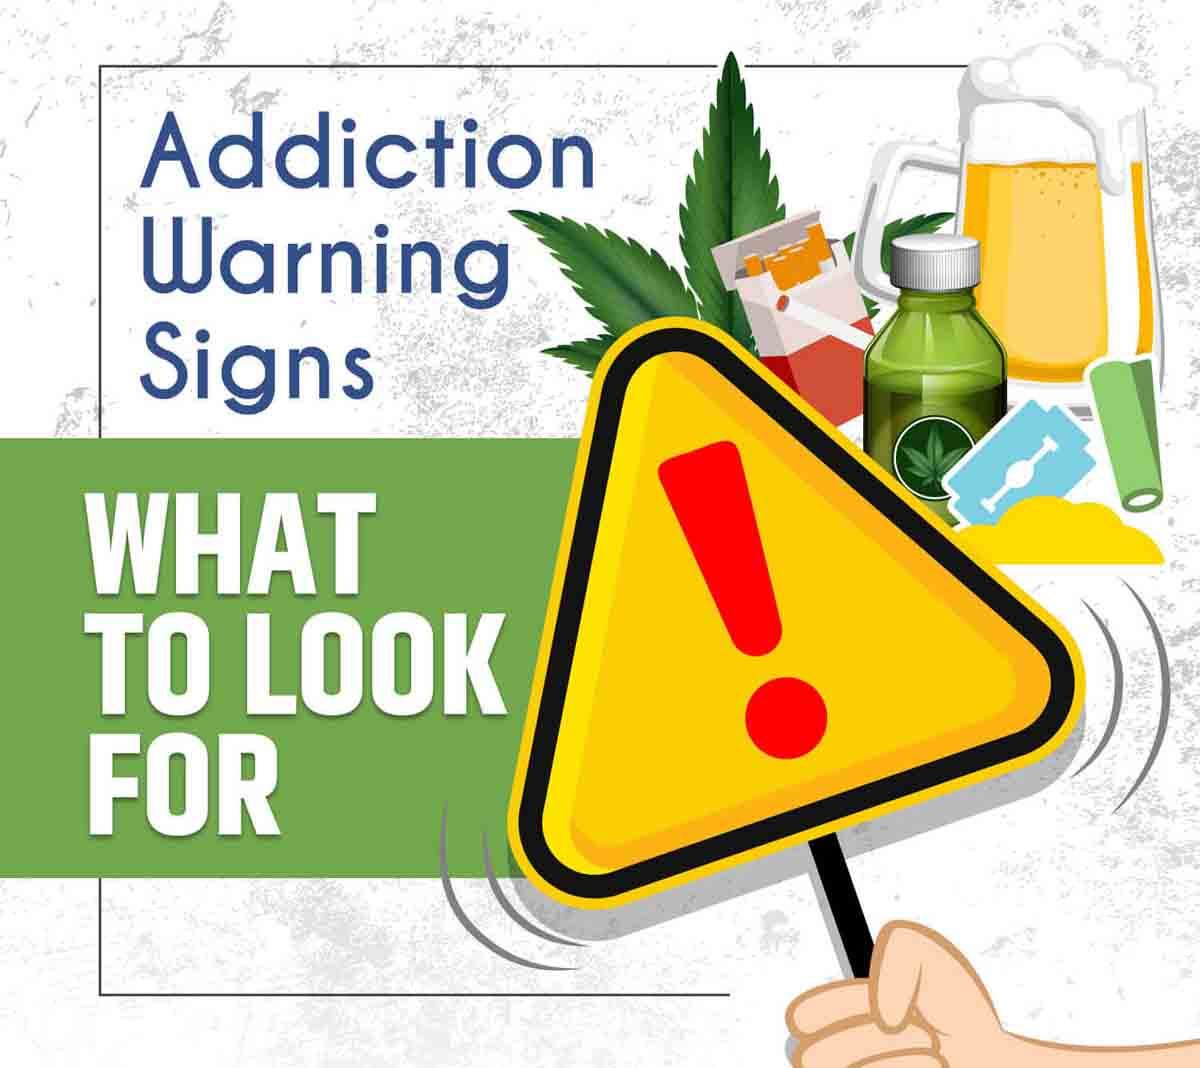 Addiction Warning Signs: What to Look For